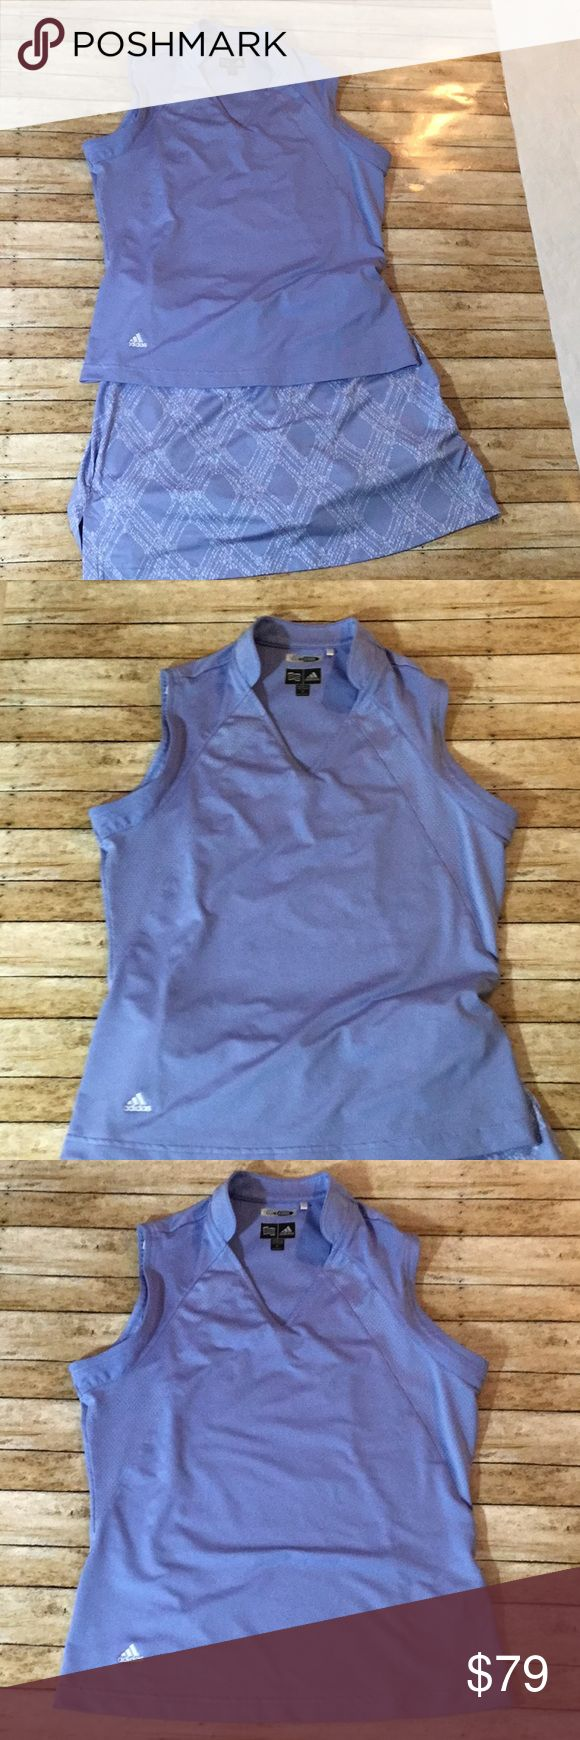 Adidas Clima Cool Tennis Outfit 44605 Adidas Clima Cool Tennis Outfit 44605 Other